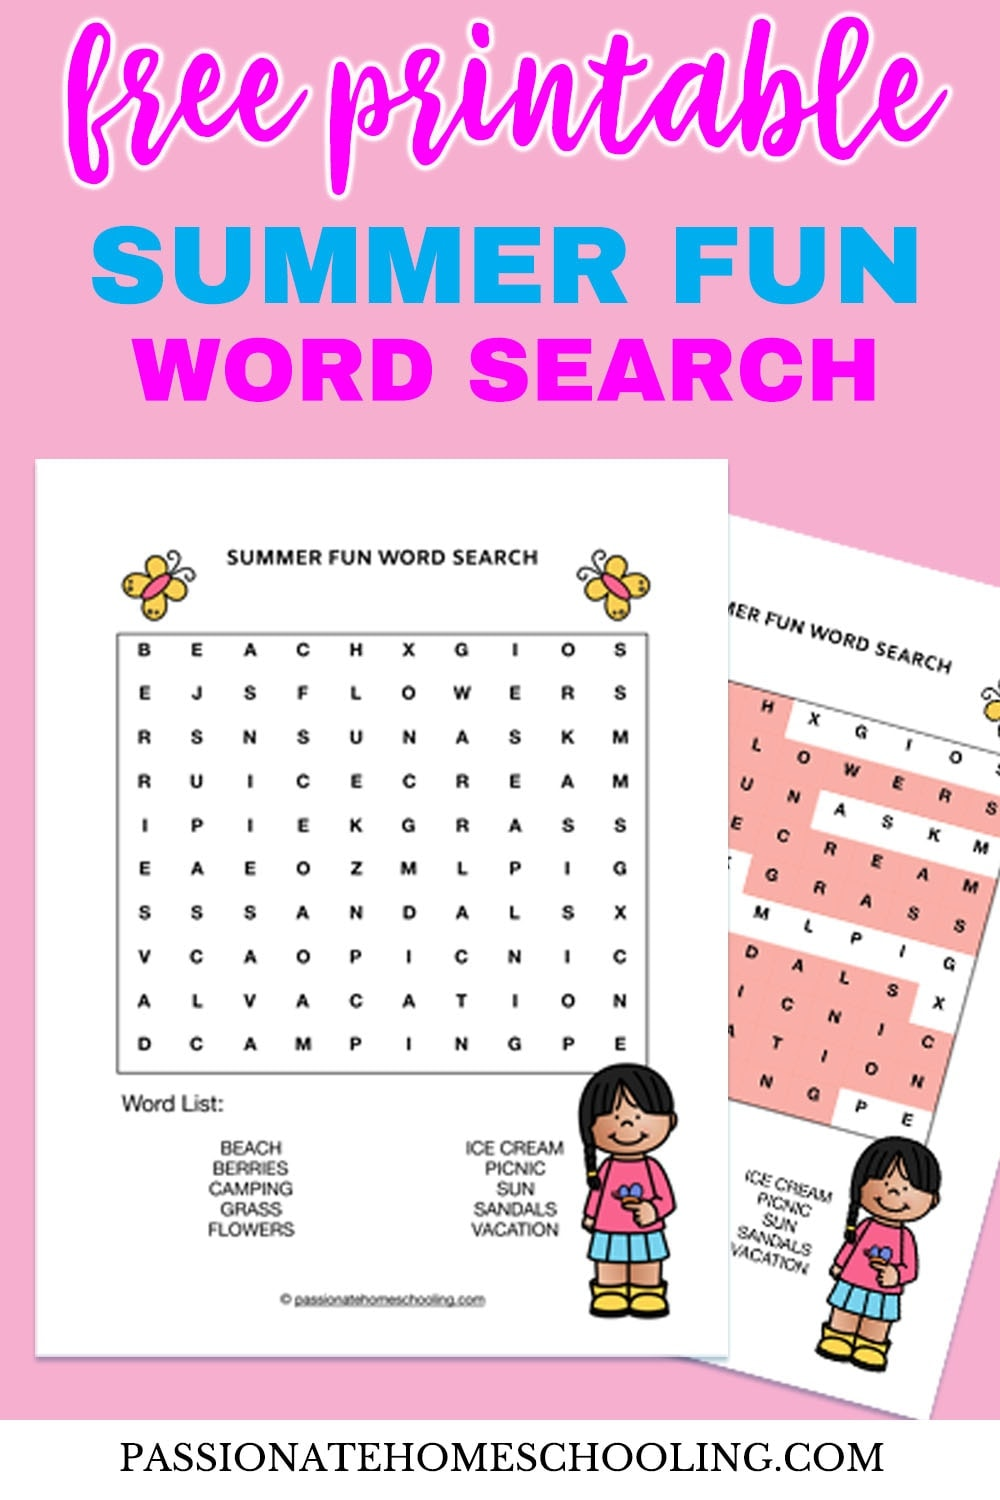 Summer Fun Word Search For Kids